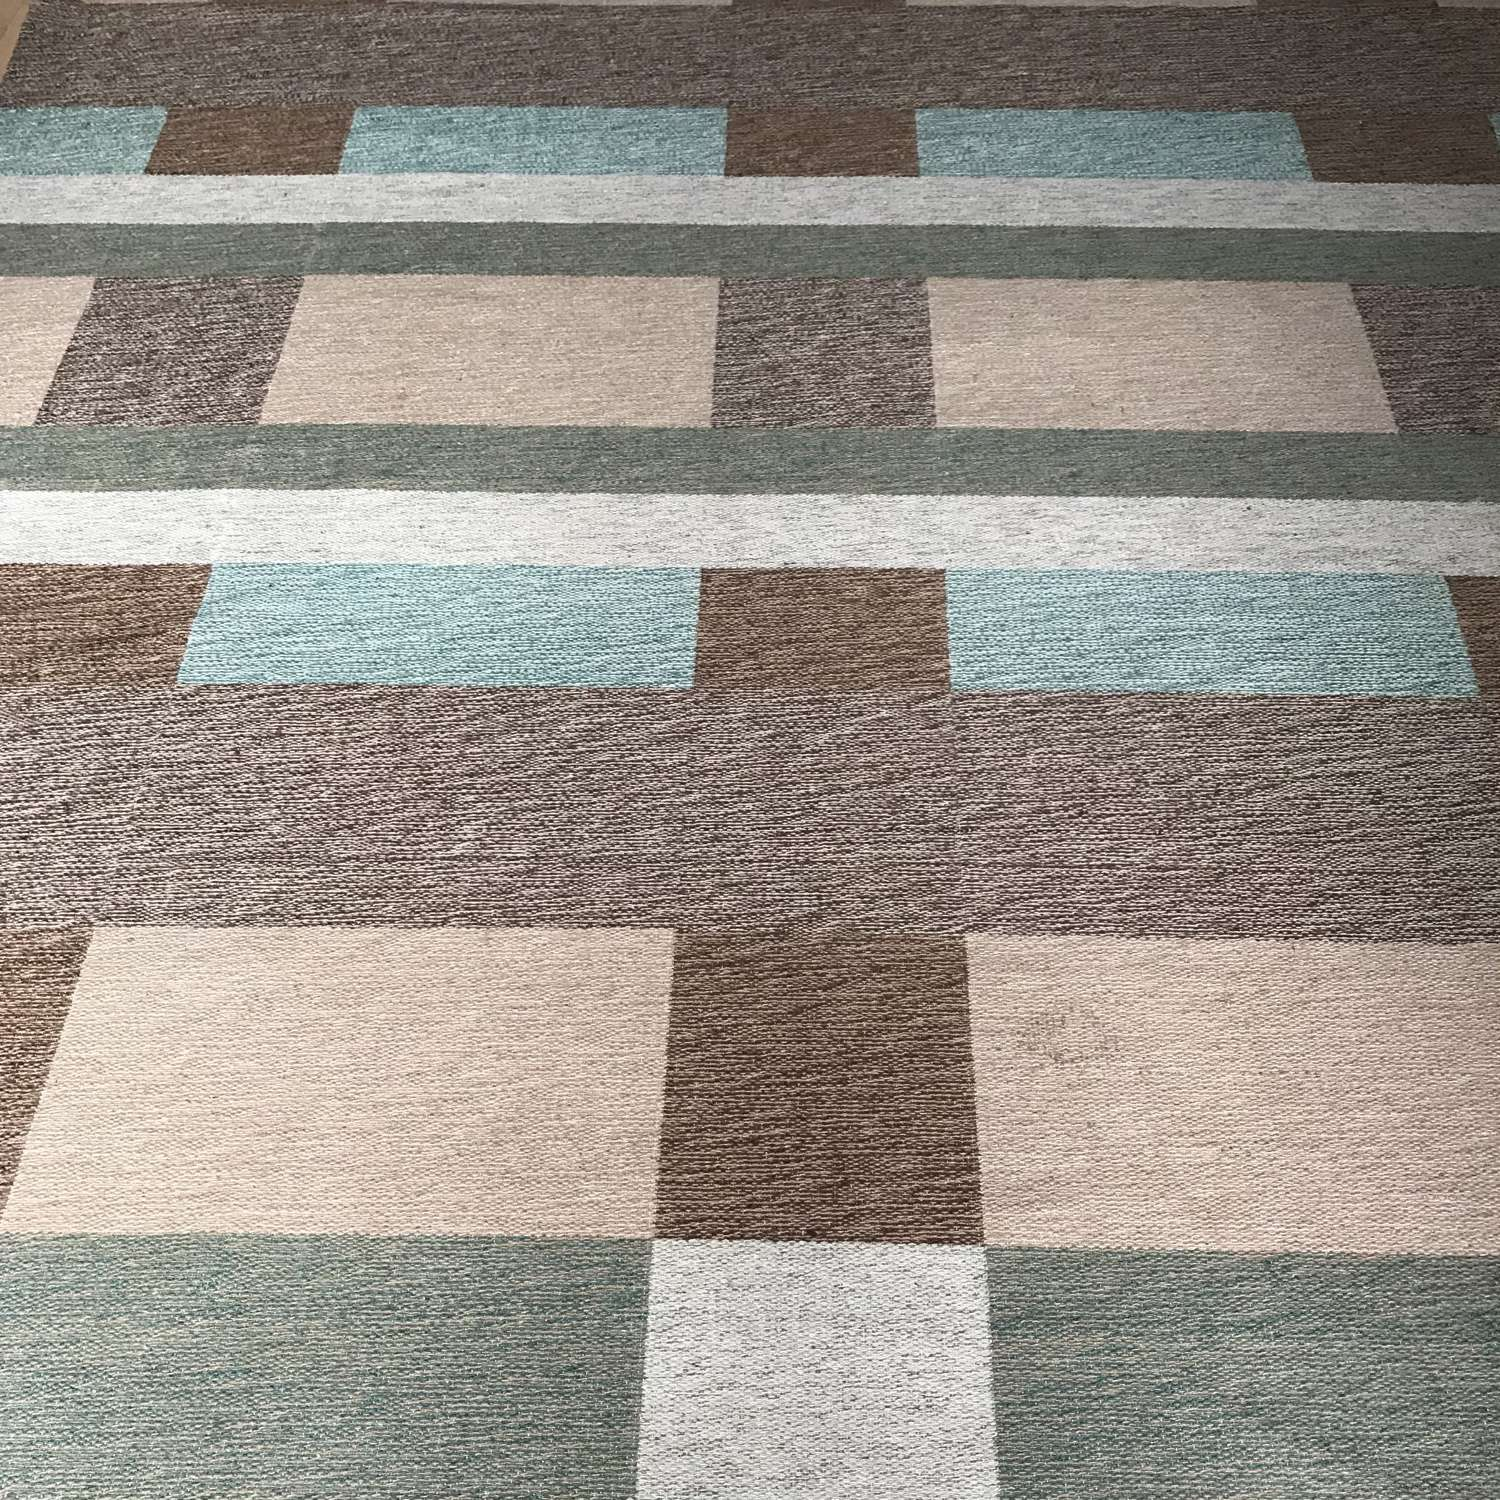 Large röllakan rug in green blue and brown tones Sweden c1960s